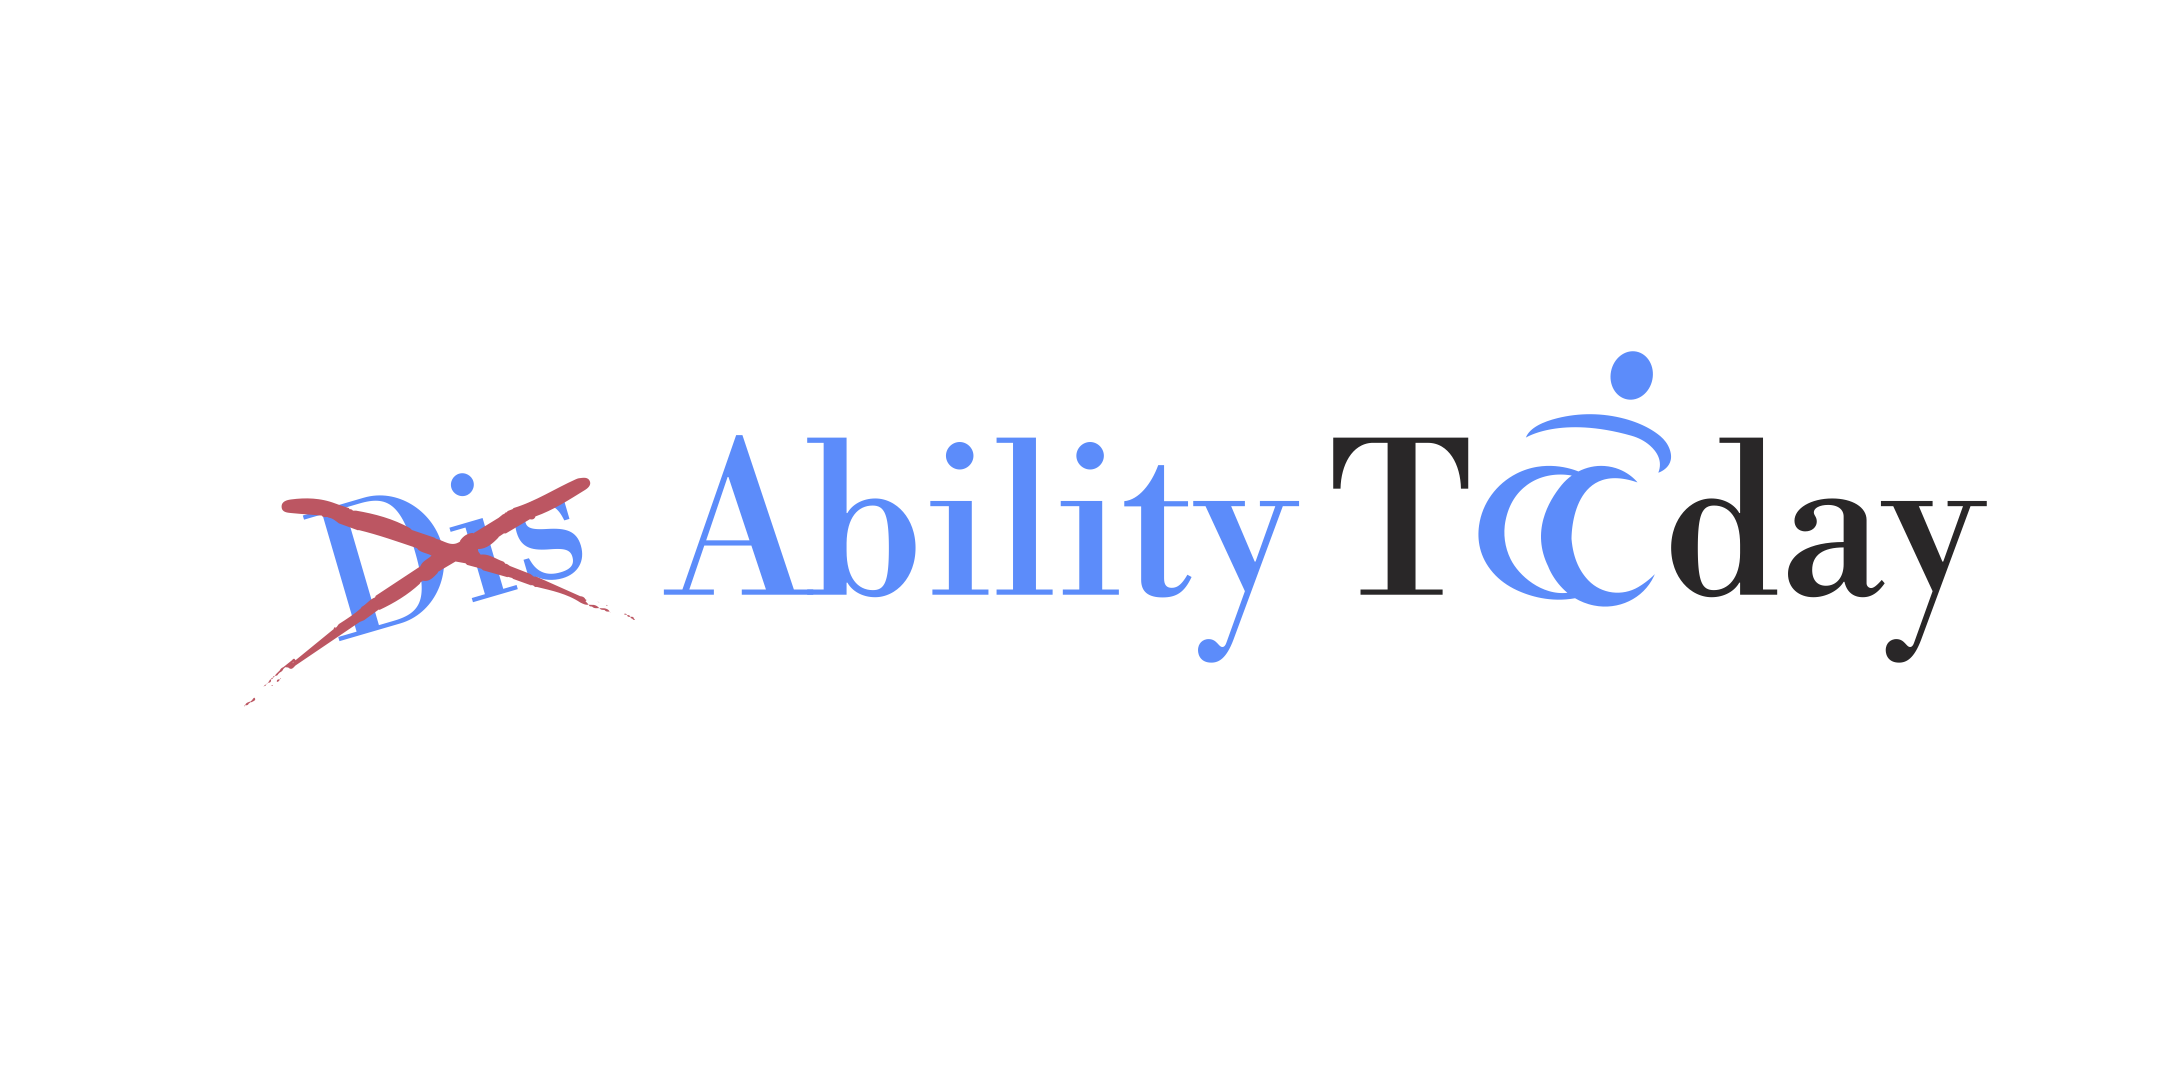 Disability Today CIC t/a Ability Today